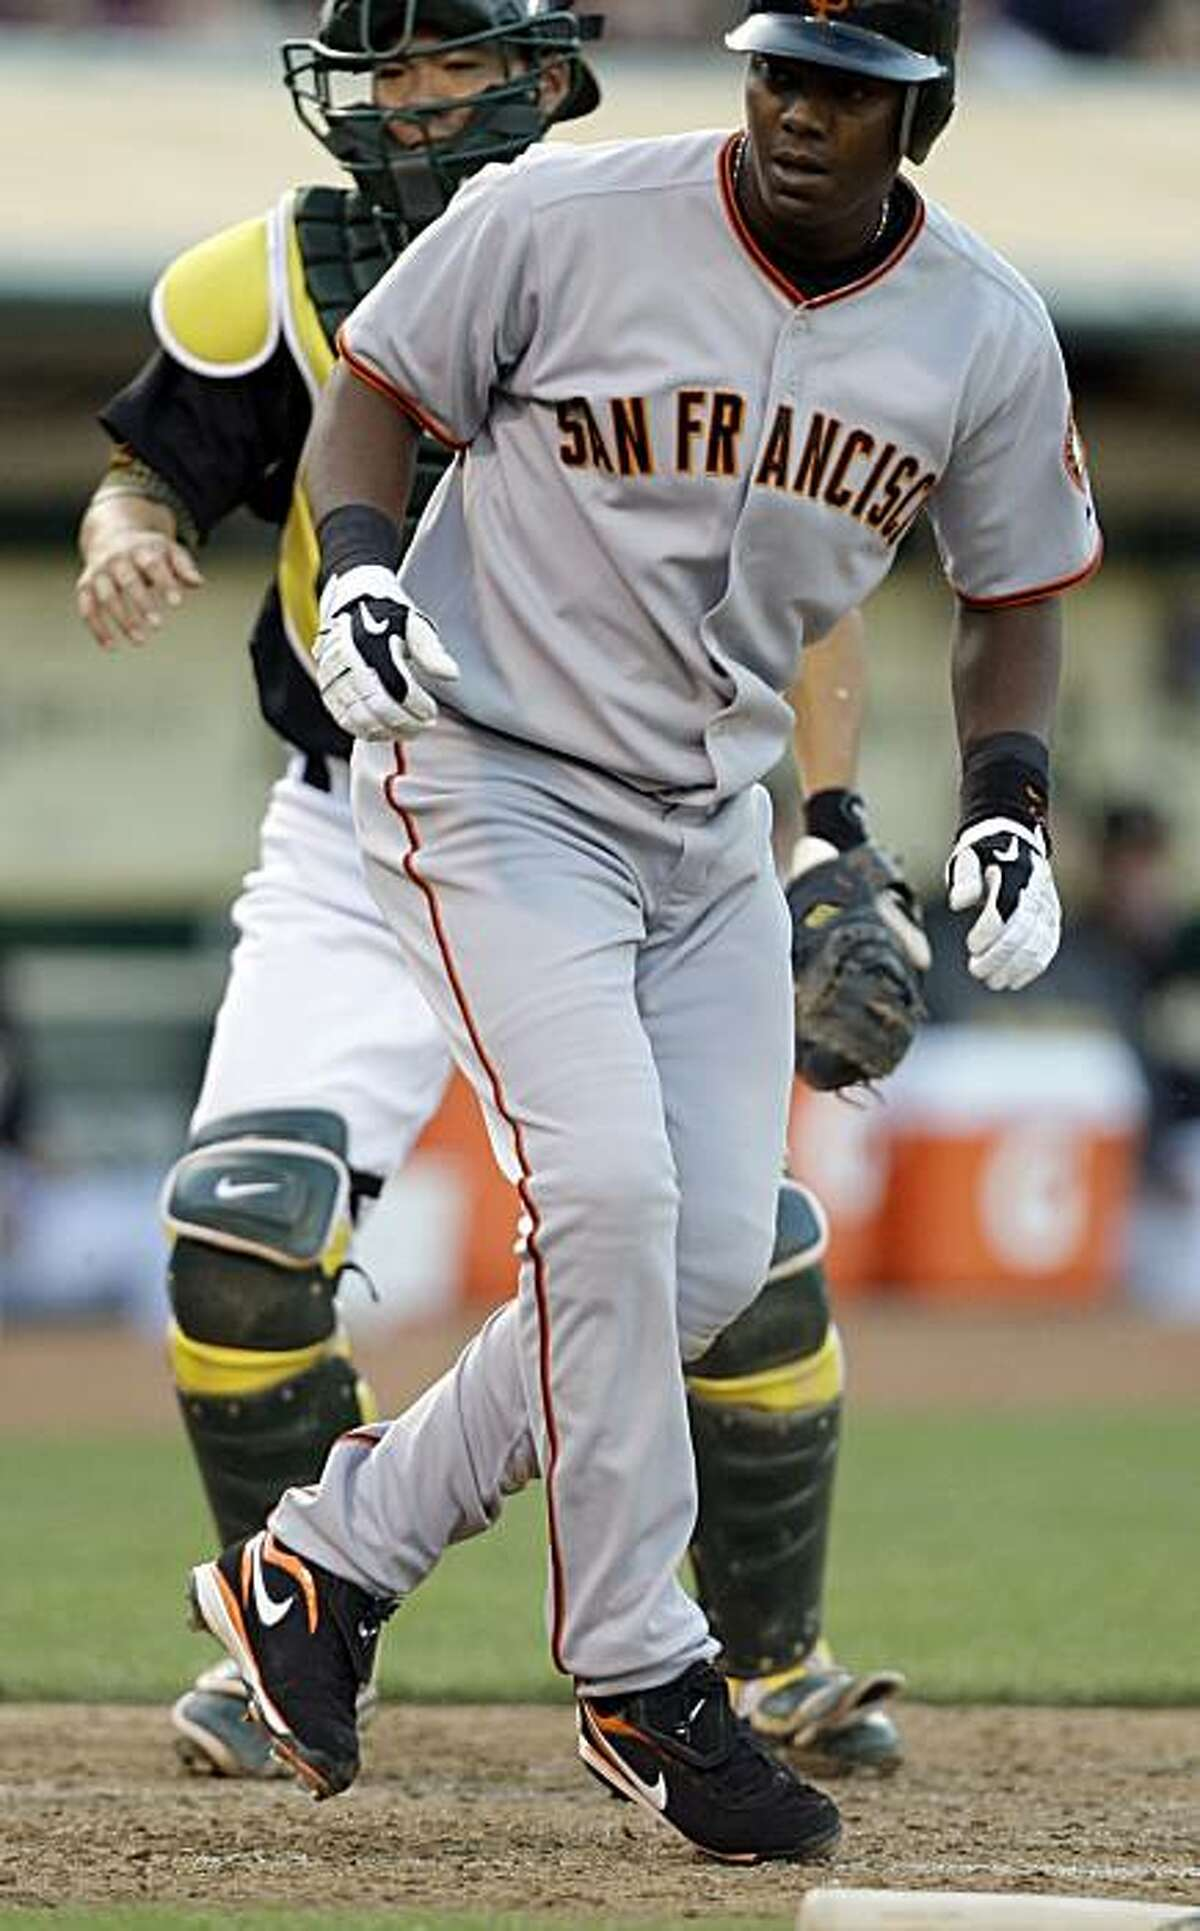 San Francisco Giants' Edgar Renteria scores in front of Oakland Athletics catcher Kurt Suzuki in the second inning of a baseball game Tuesday, June 23, 2009, in Oakland, Calif. Renteria scored on a sacrifice fly ball hit by Matt Downs. (AP Photo/Ben Margot)